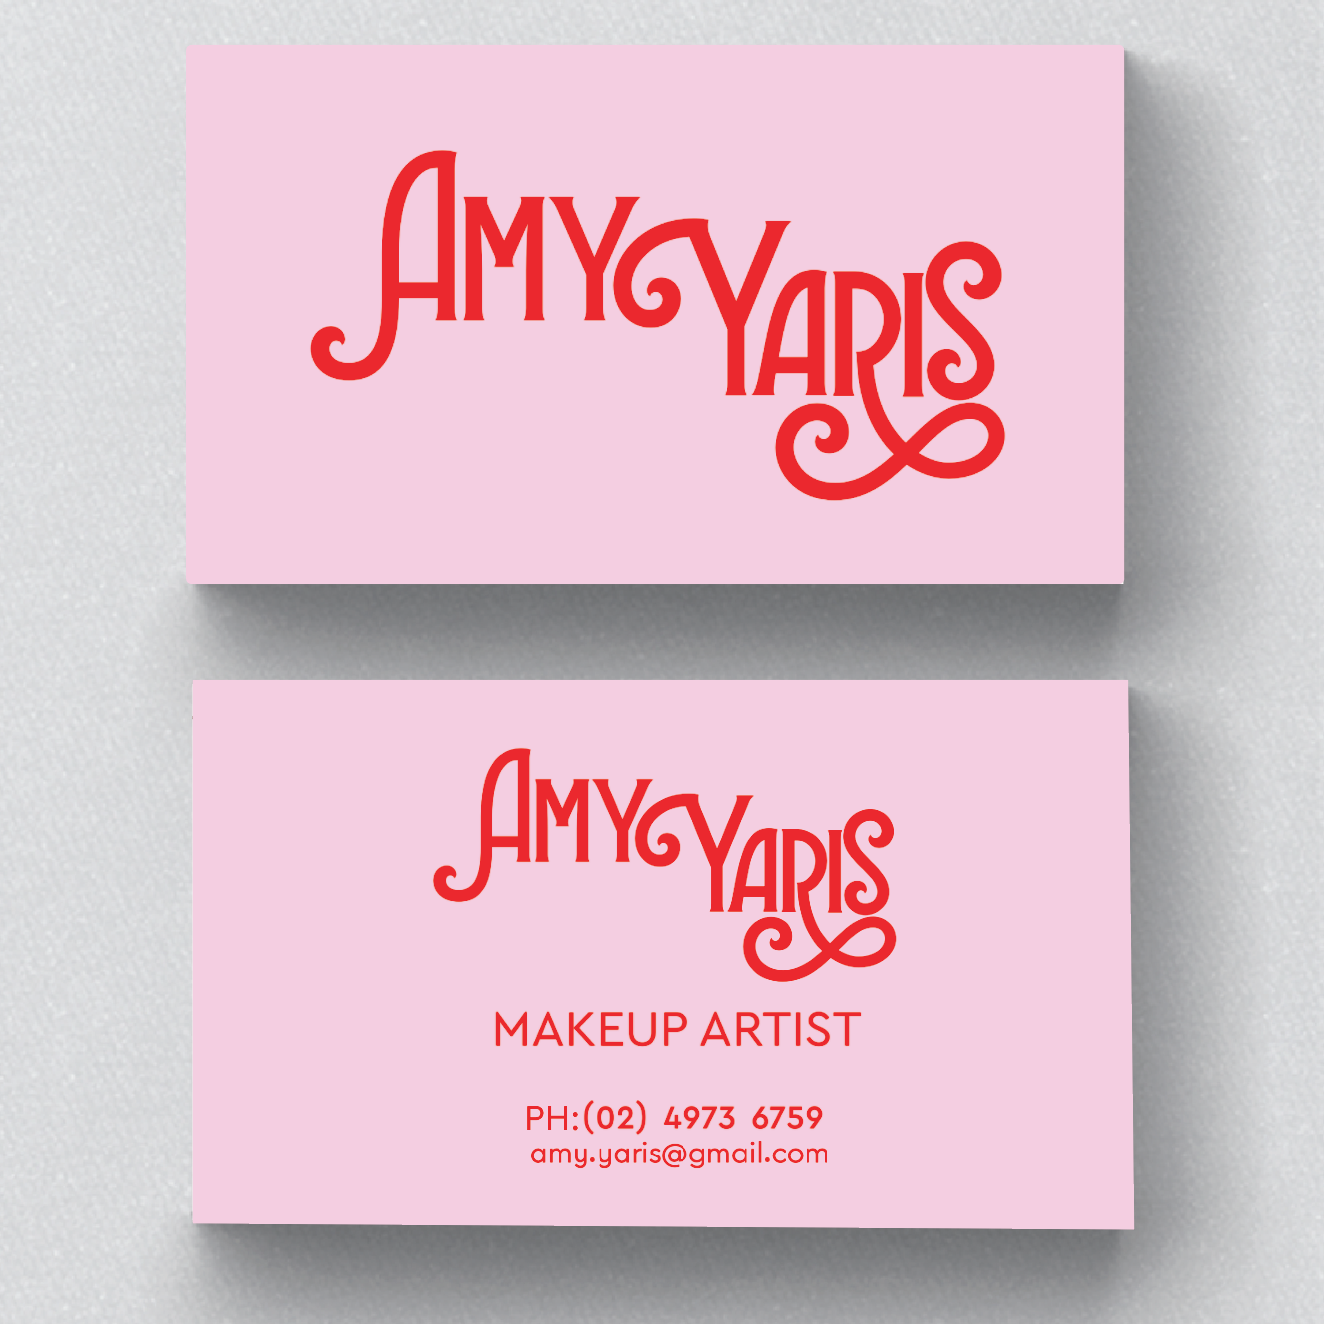 Amy Yaris Business Card Design -